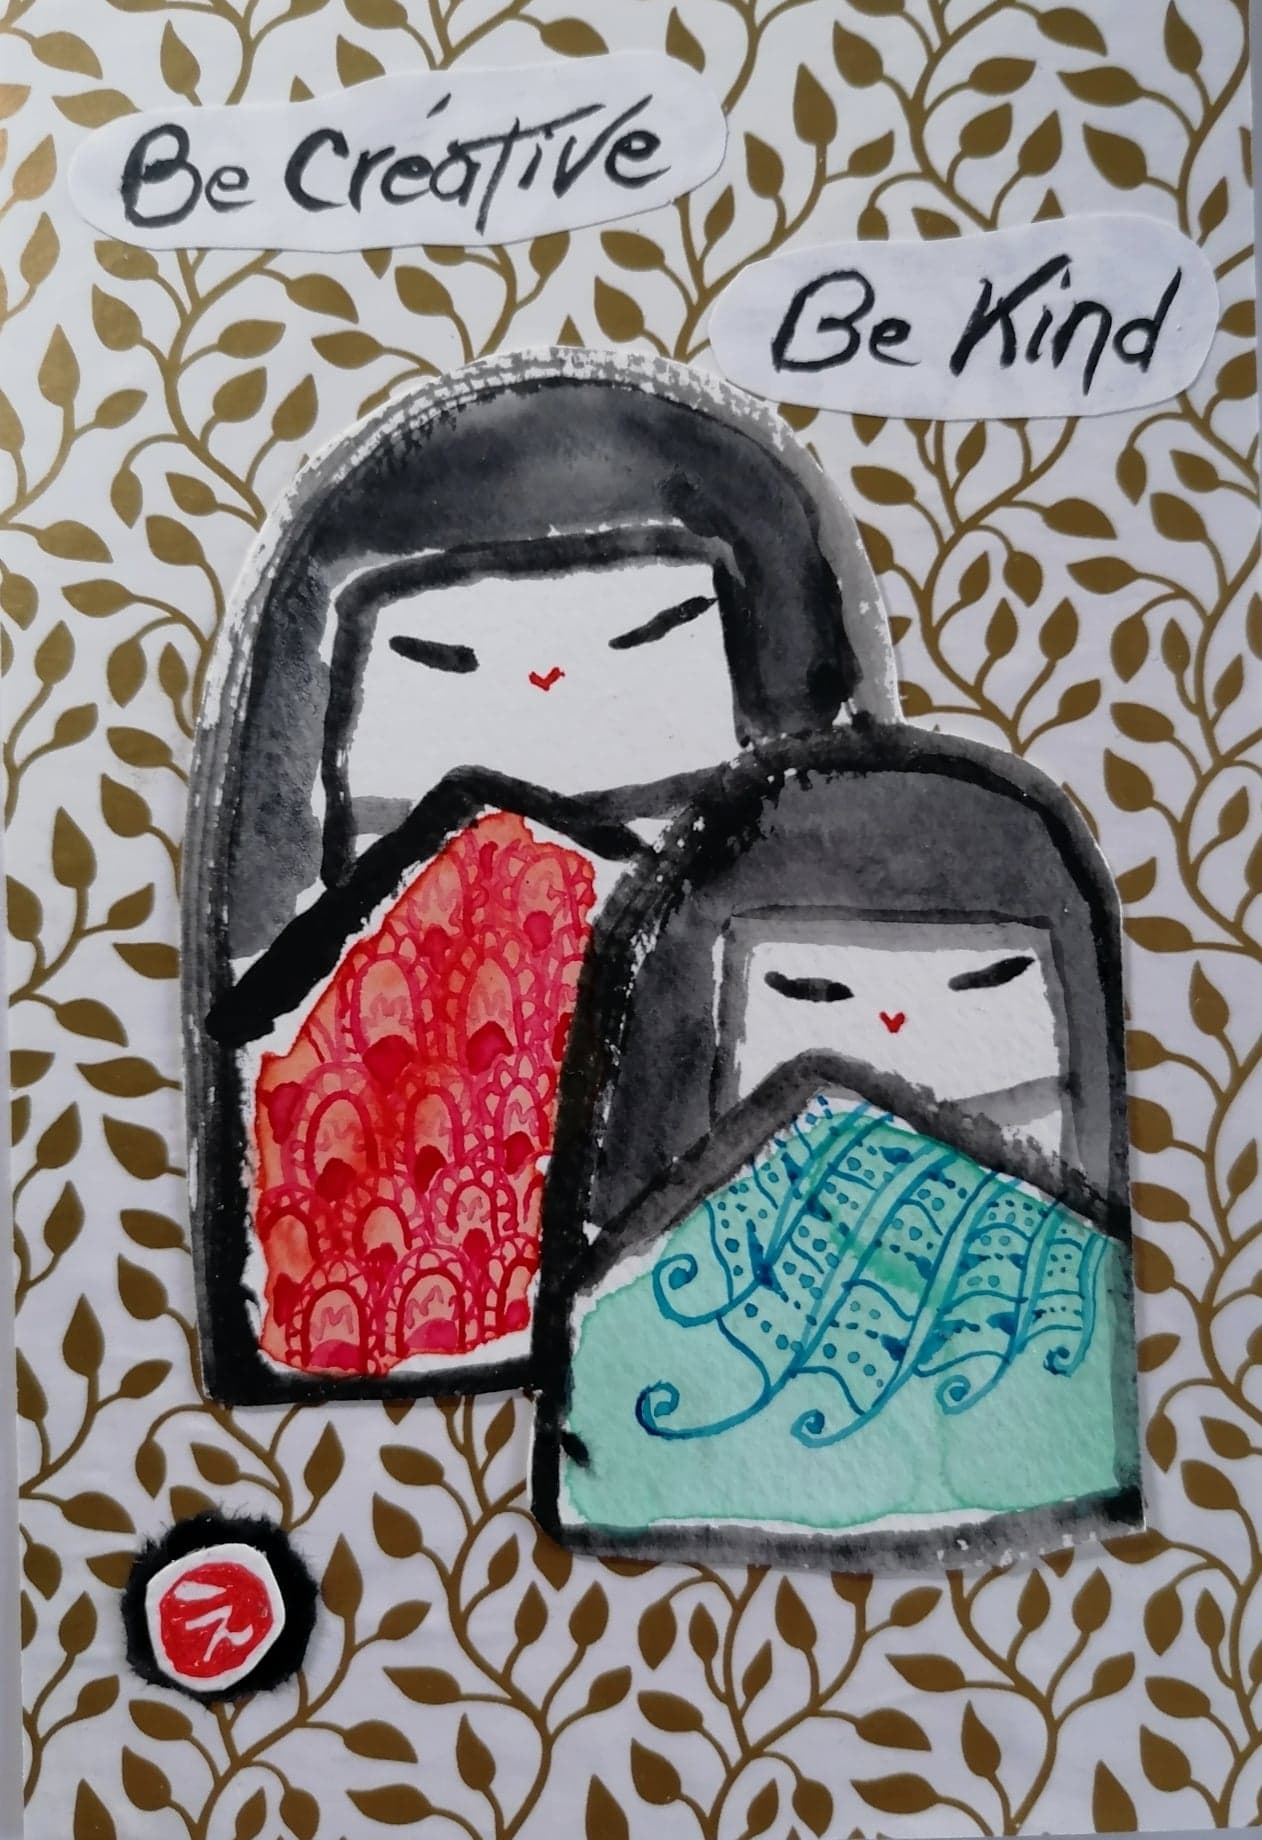 Be creative, be kind